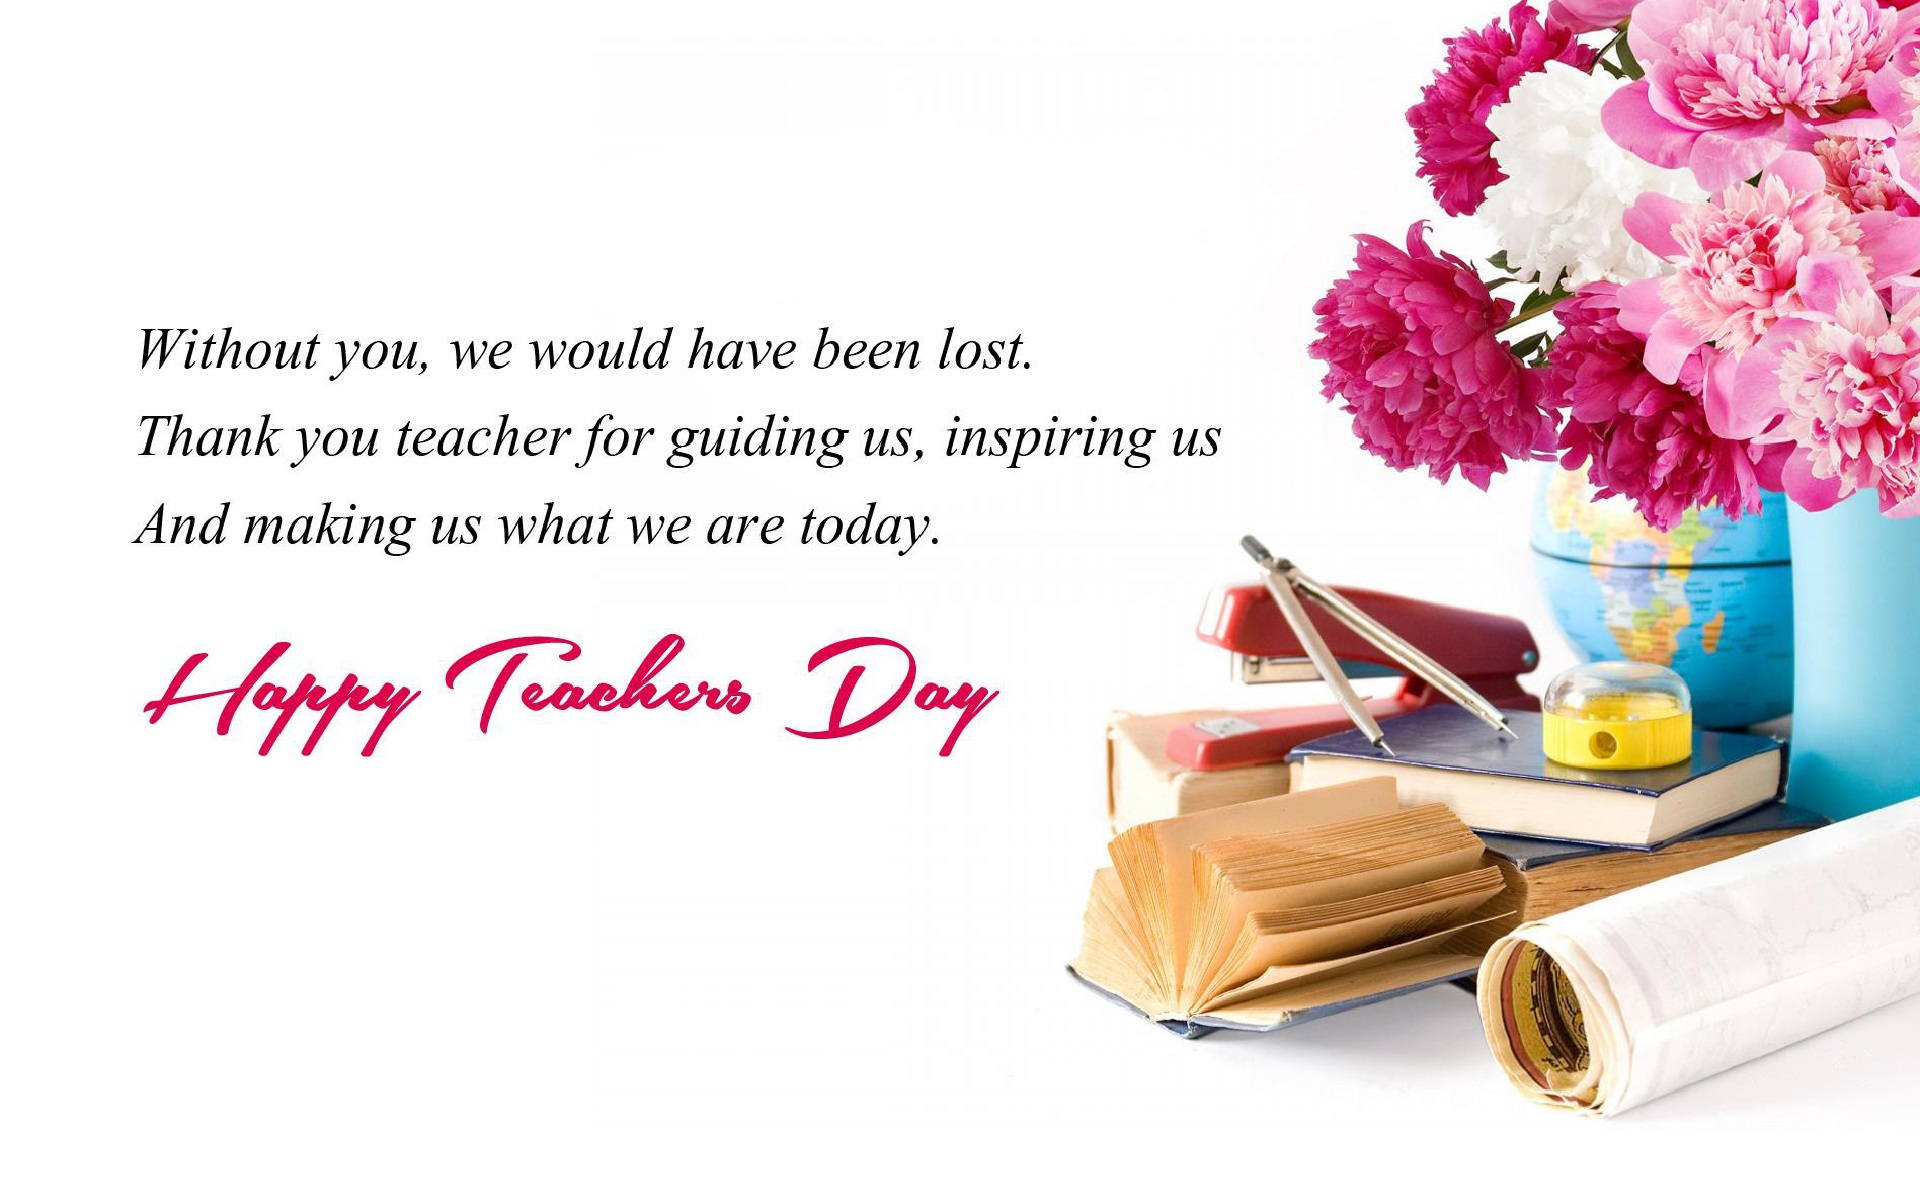 Happy Teachers Day Images Pictures 2017 Free Download